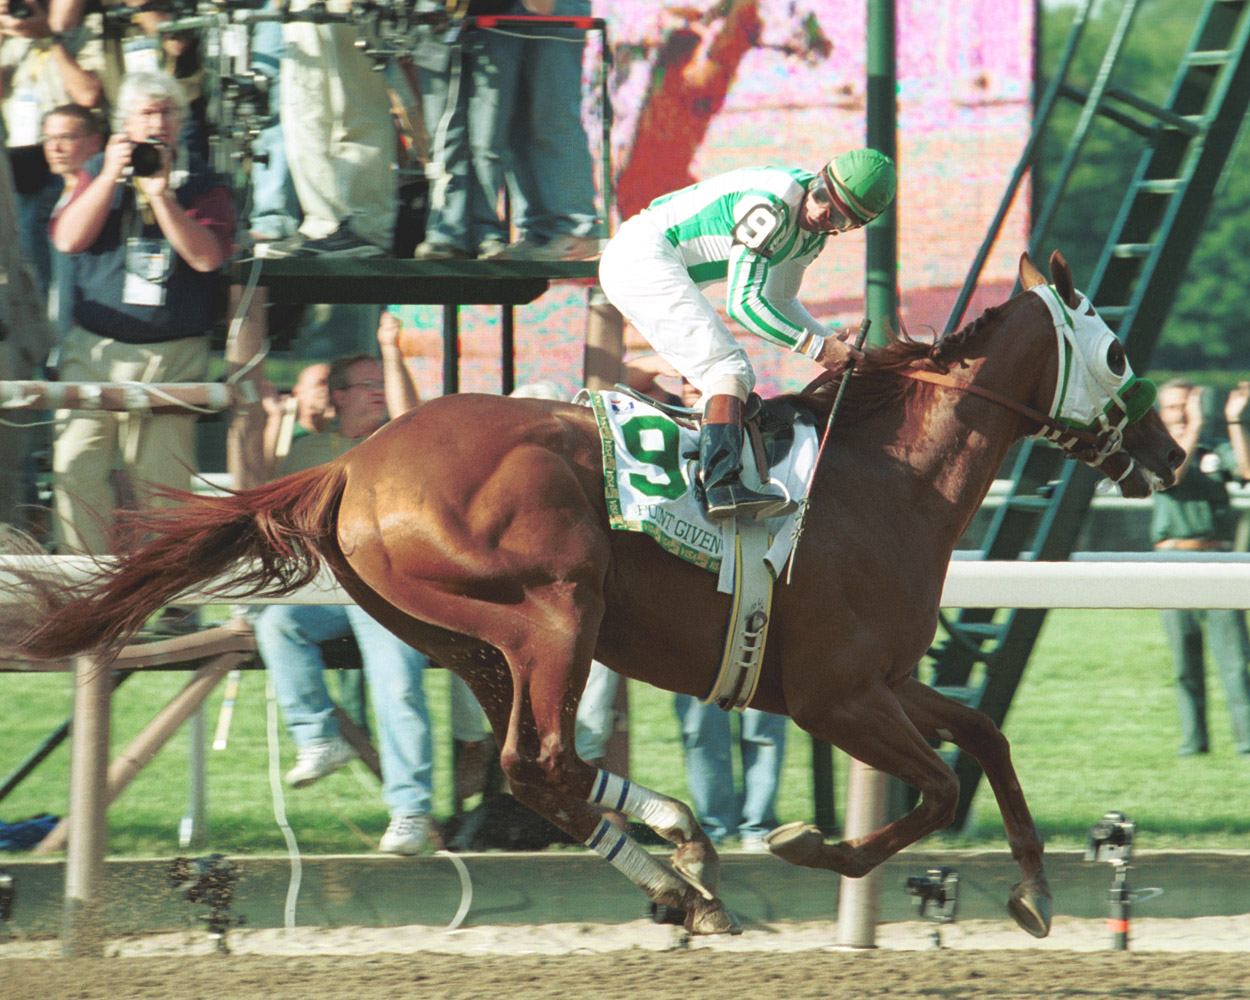 Looking back for the competition, Point Given's rider (Gary Stevens) discovers they won the Belmont by over 12 lengths (NYRA)